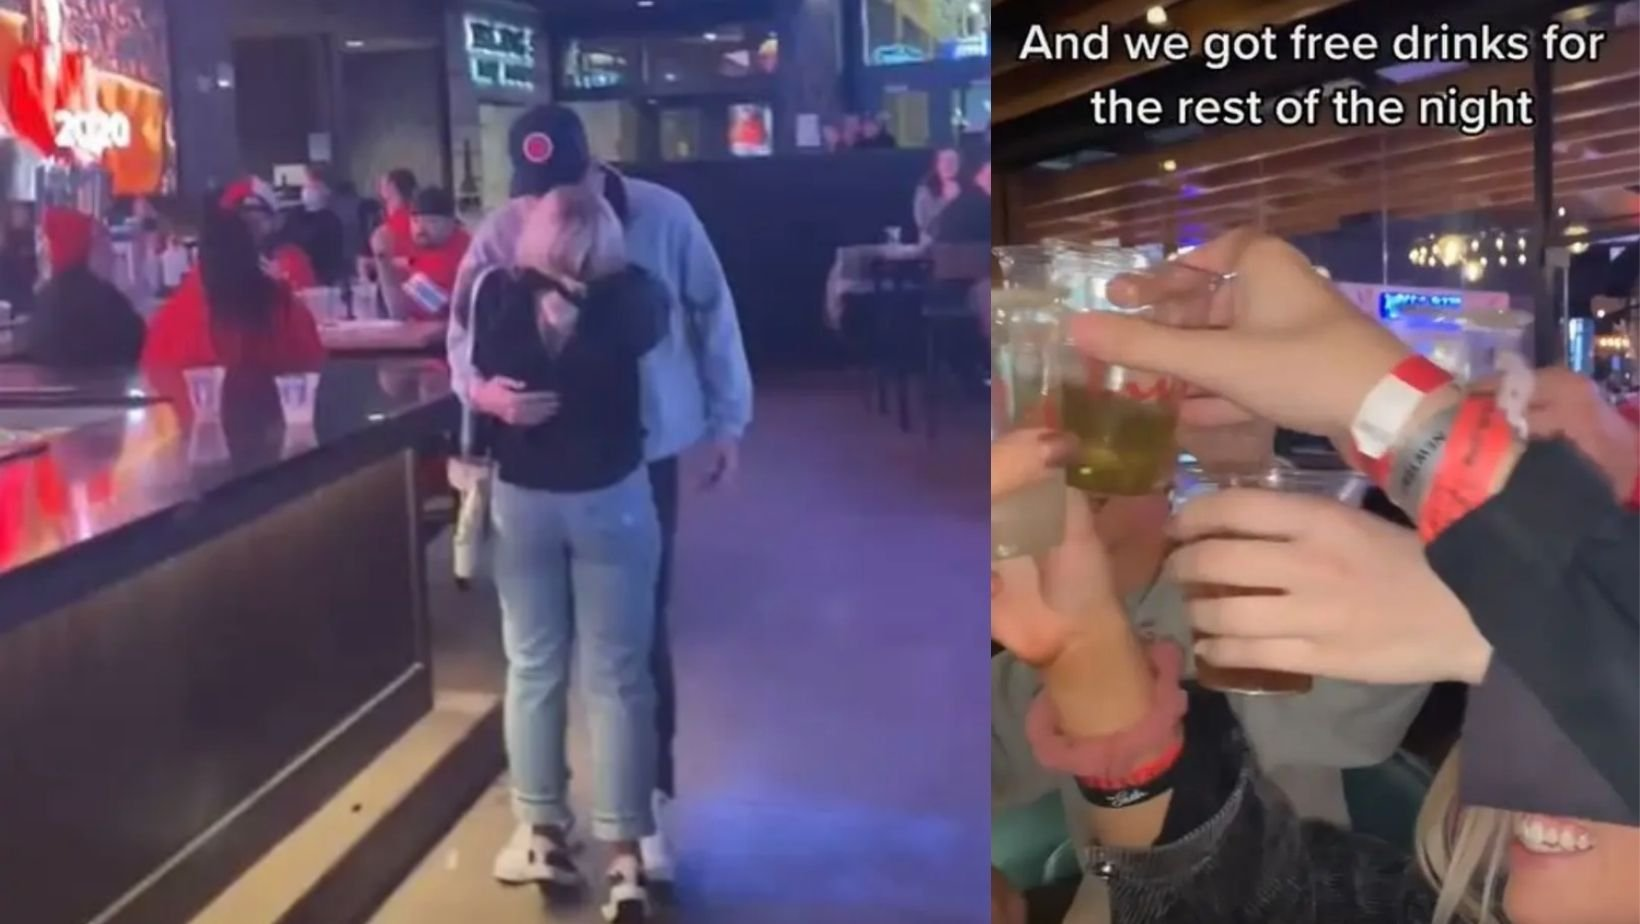 1 46.jpg?resize=1200,630 - Millenial TikTokers Are Lambasted Online After Faking A Marriage Proposal To Get Free Drinks